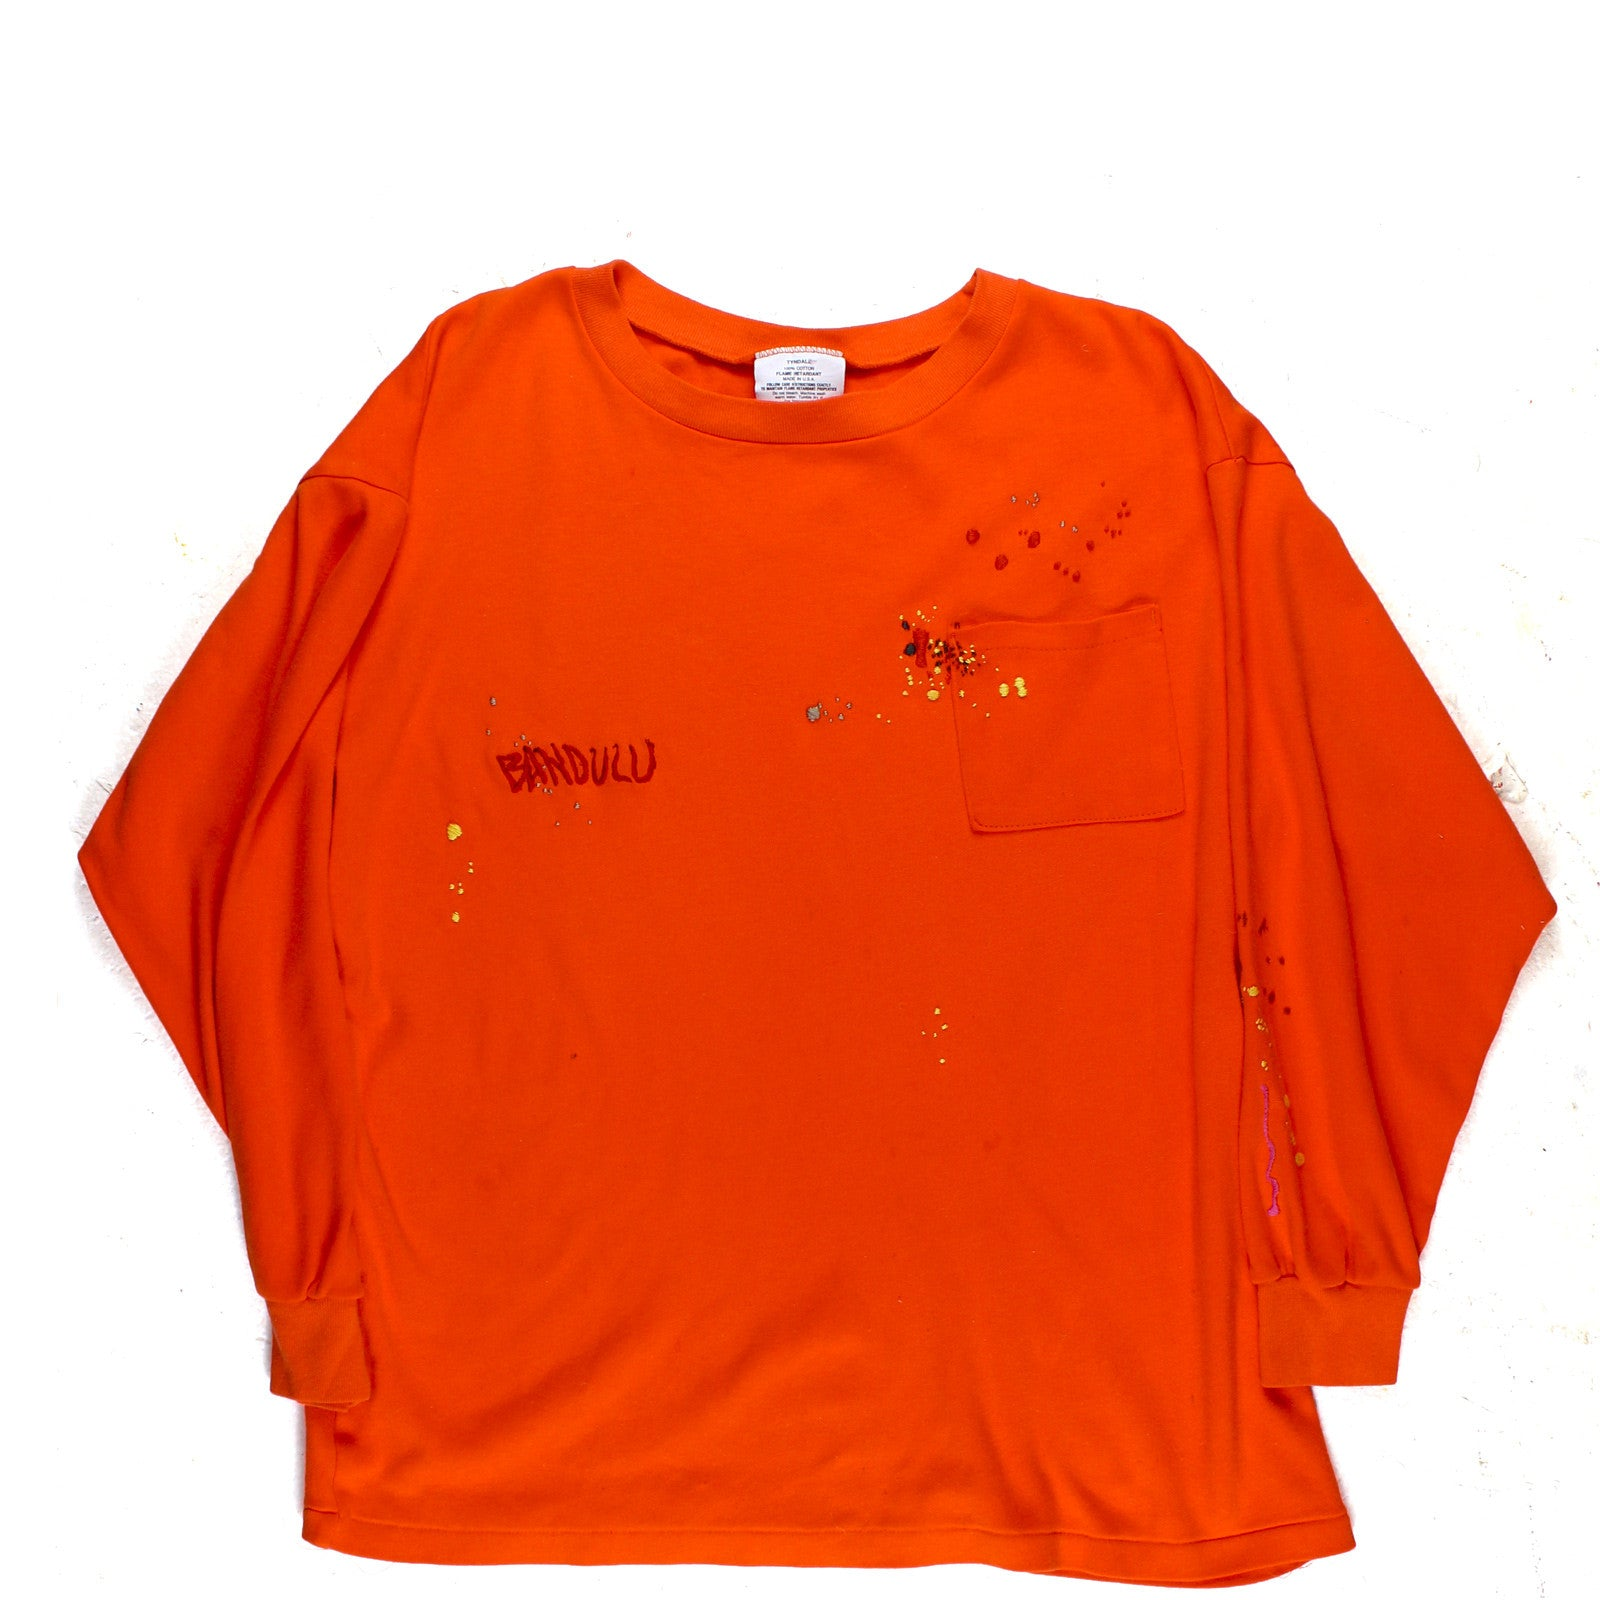 "BANDULU ""SAFE TEA"" FLAME PROOF L/S TEE"